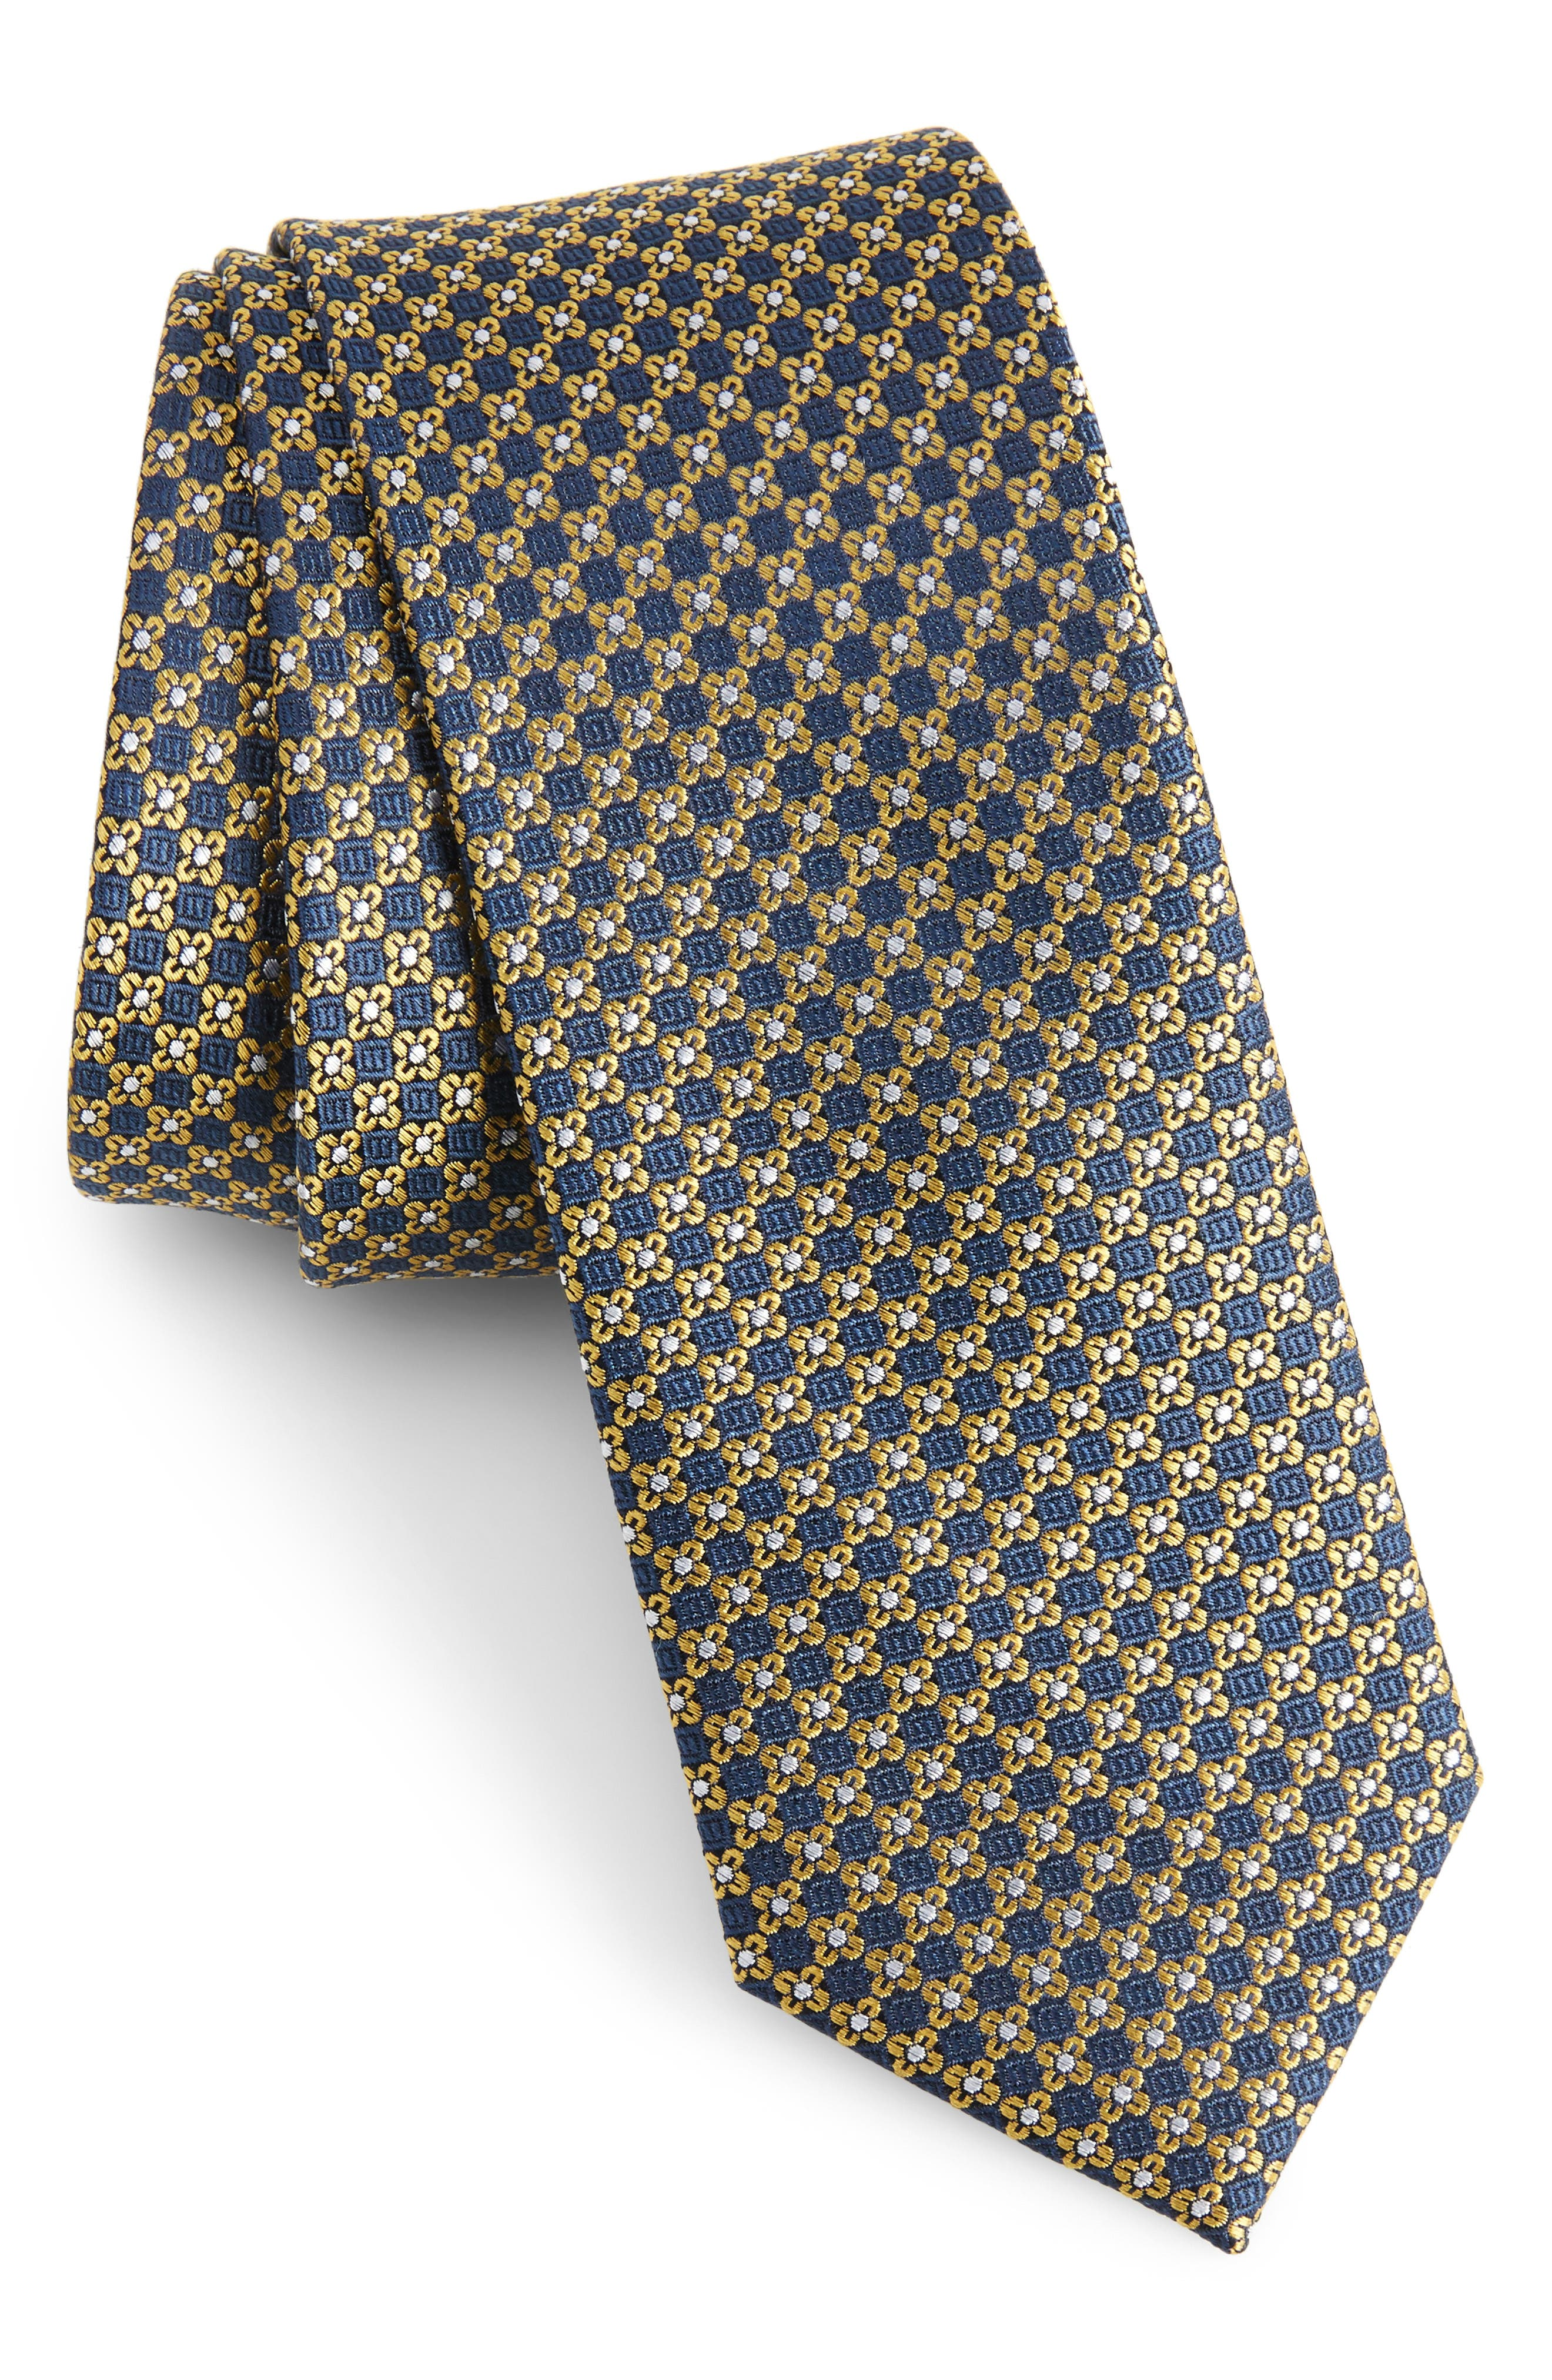 Floral Network Silk Skinny Tie,                         Main,                         color, Yellow